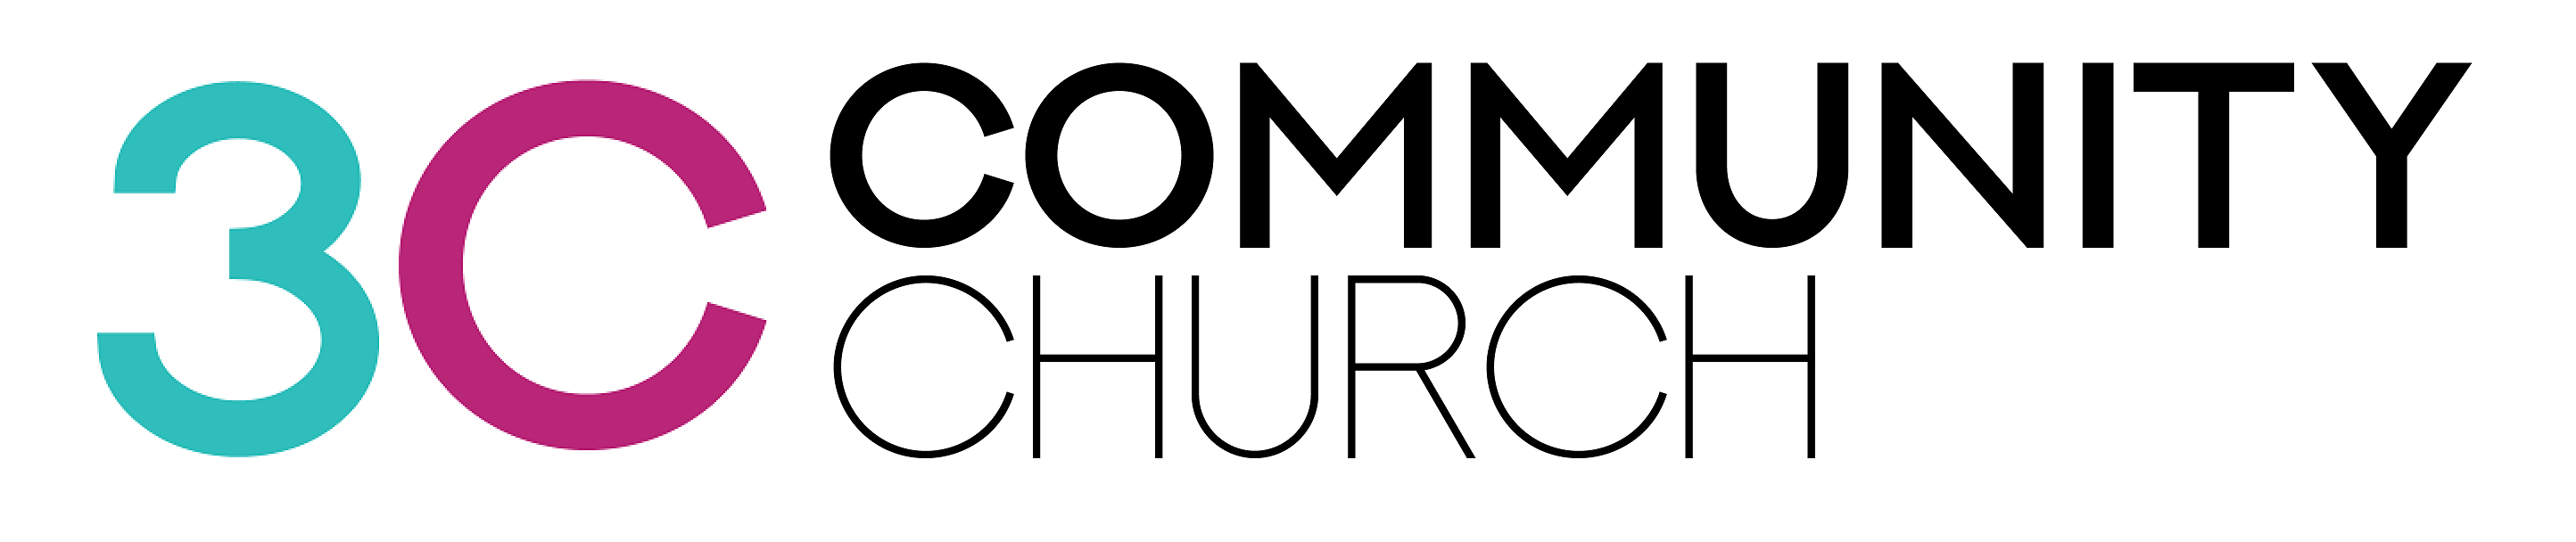 3C Community Church